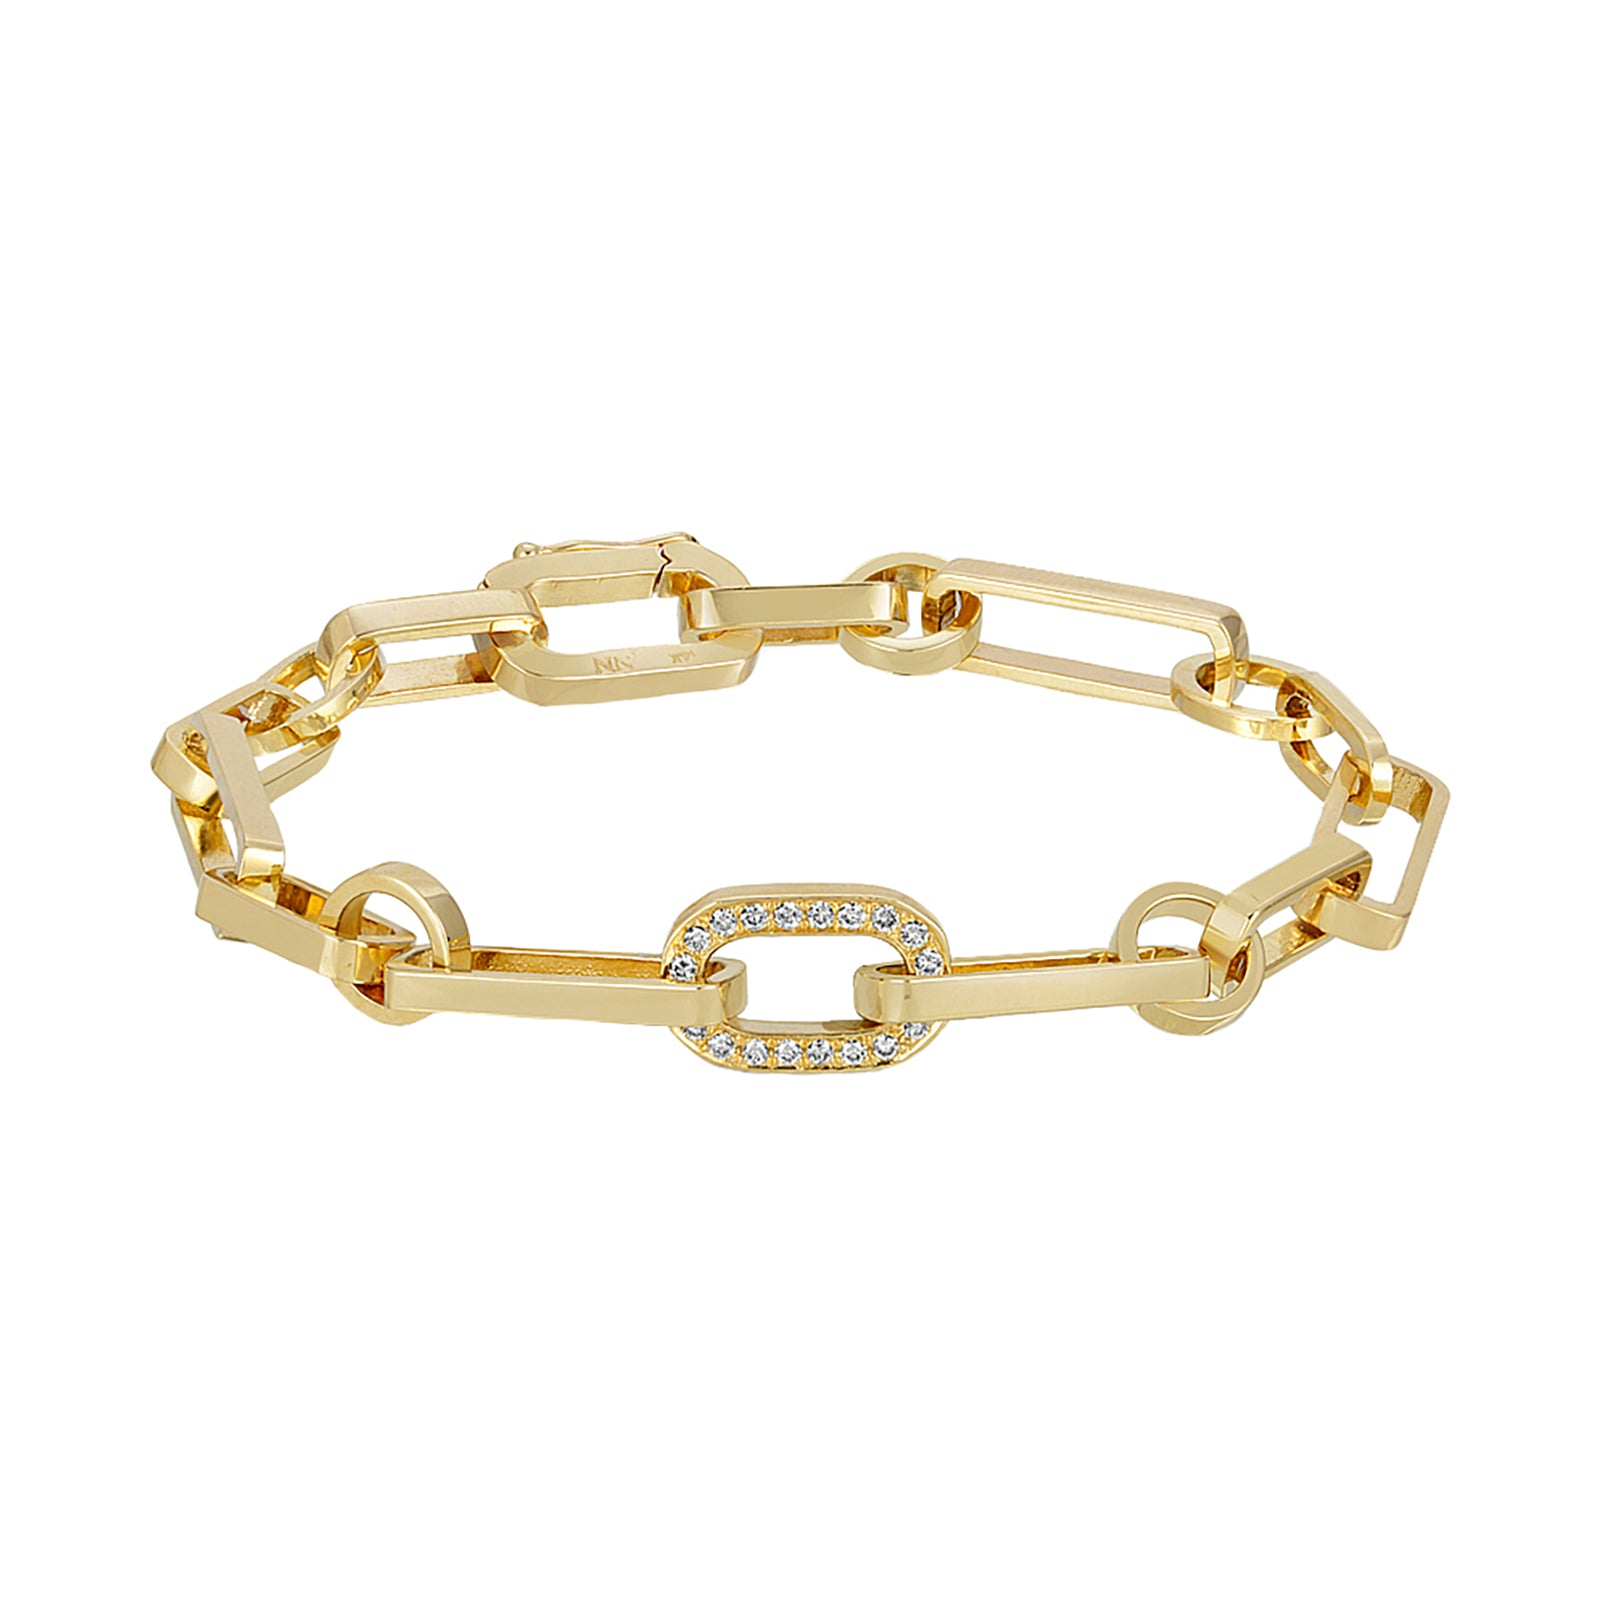 Nancy Newberg Gold Link Bracelet - One Diamond - Bracelets - Broken English Jewelry